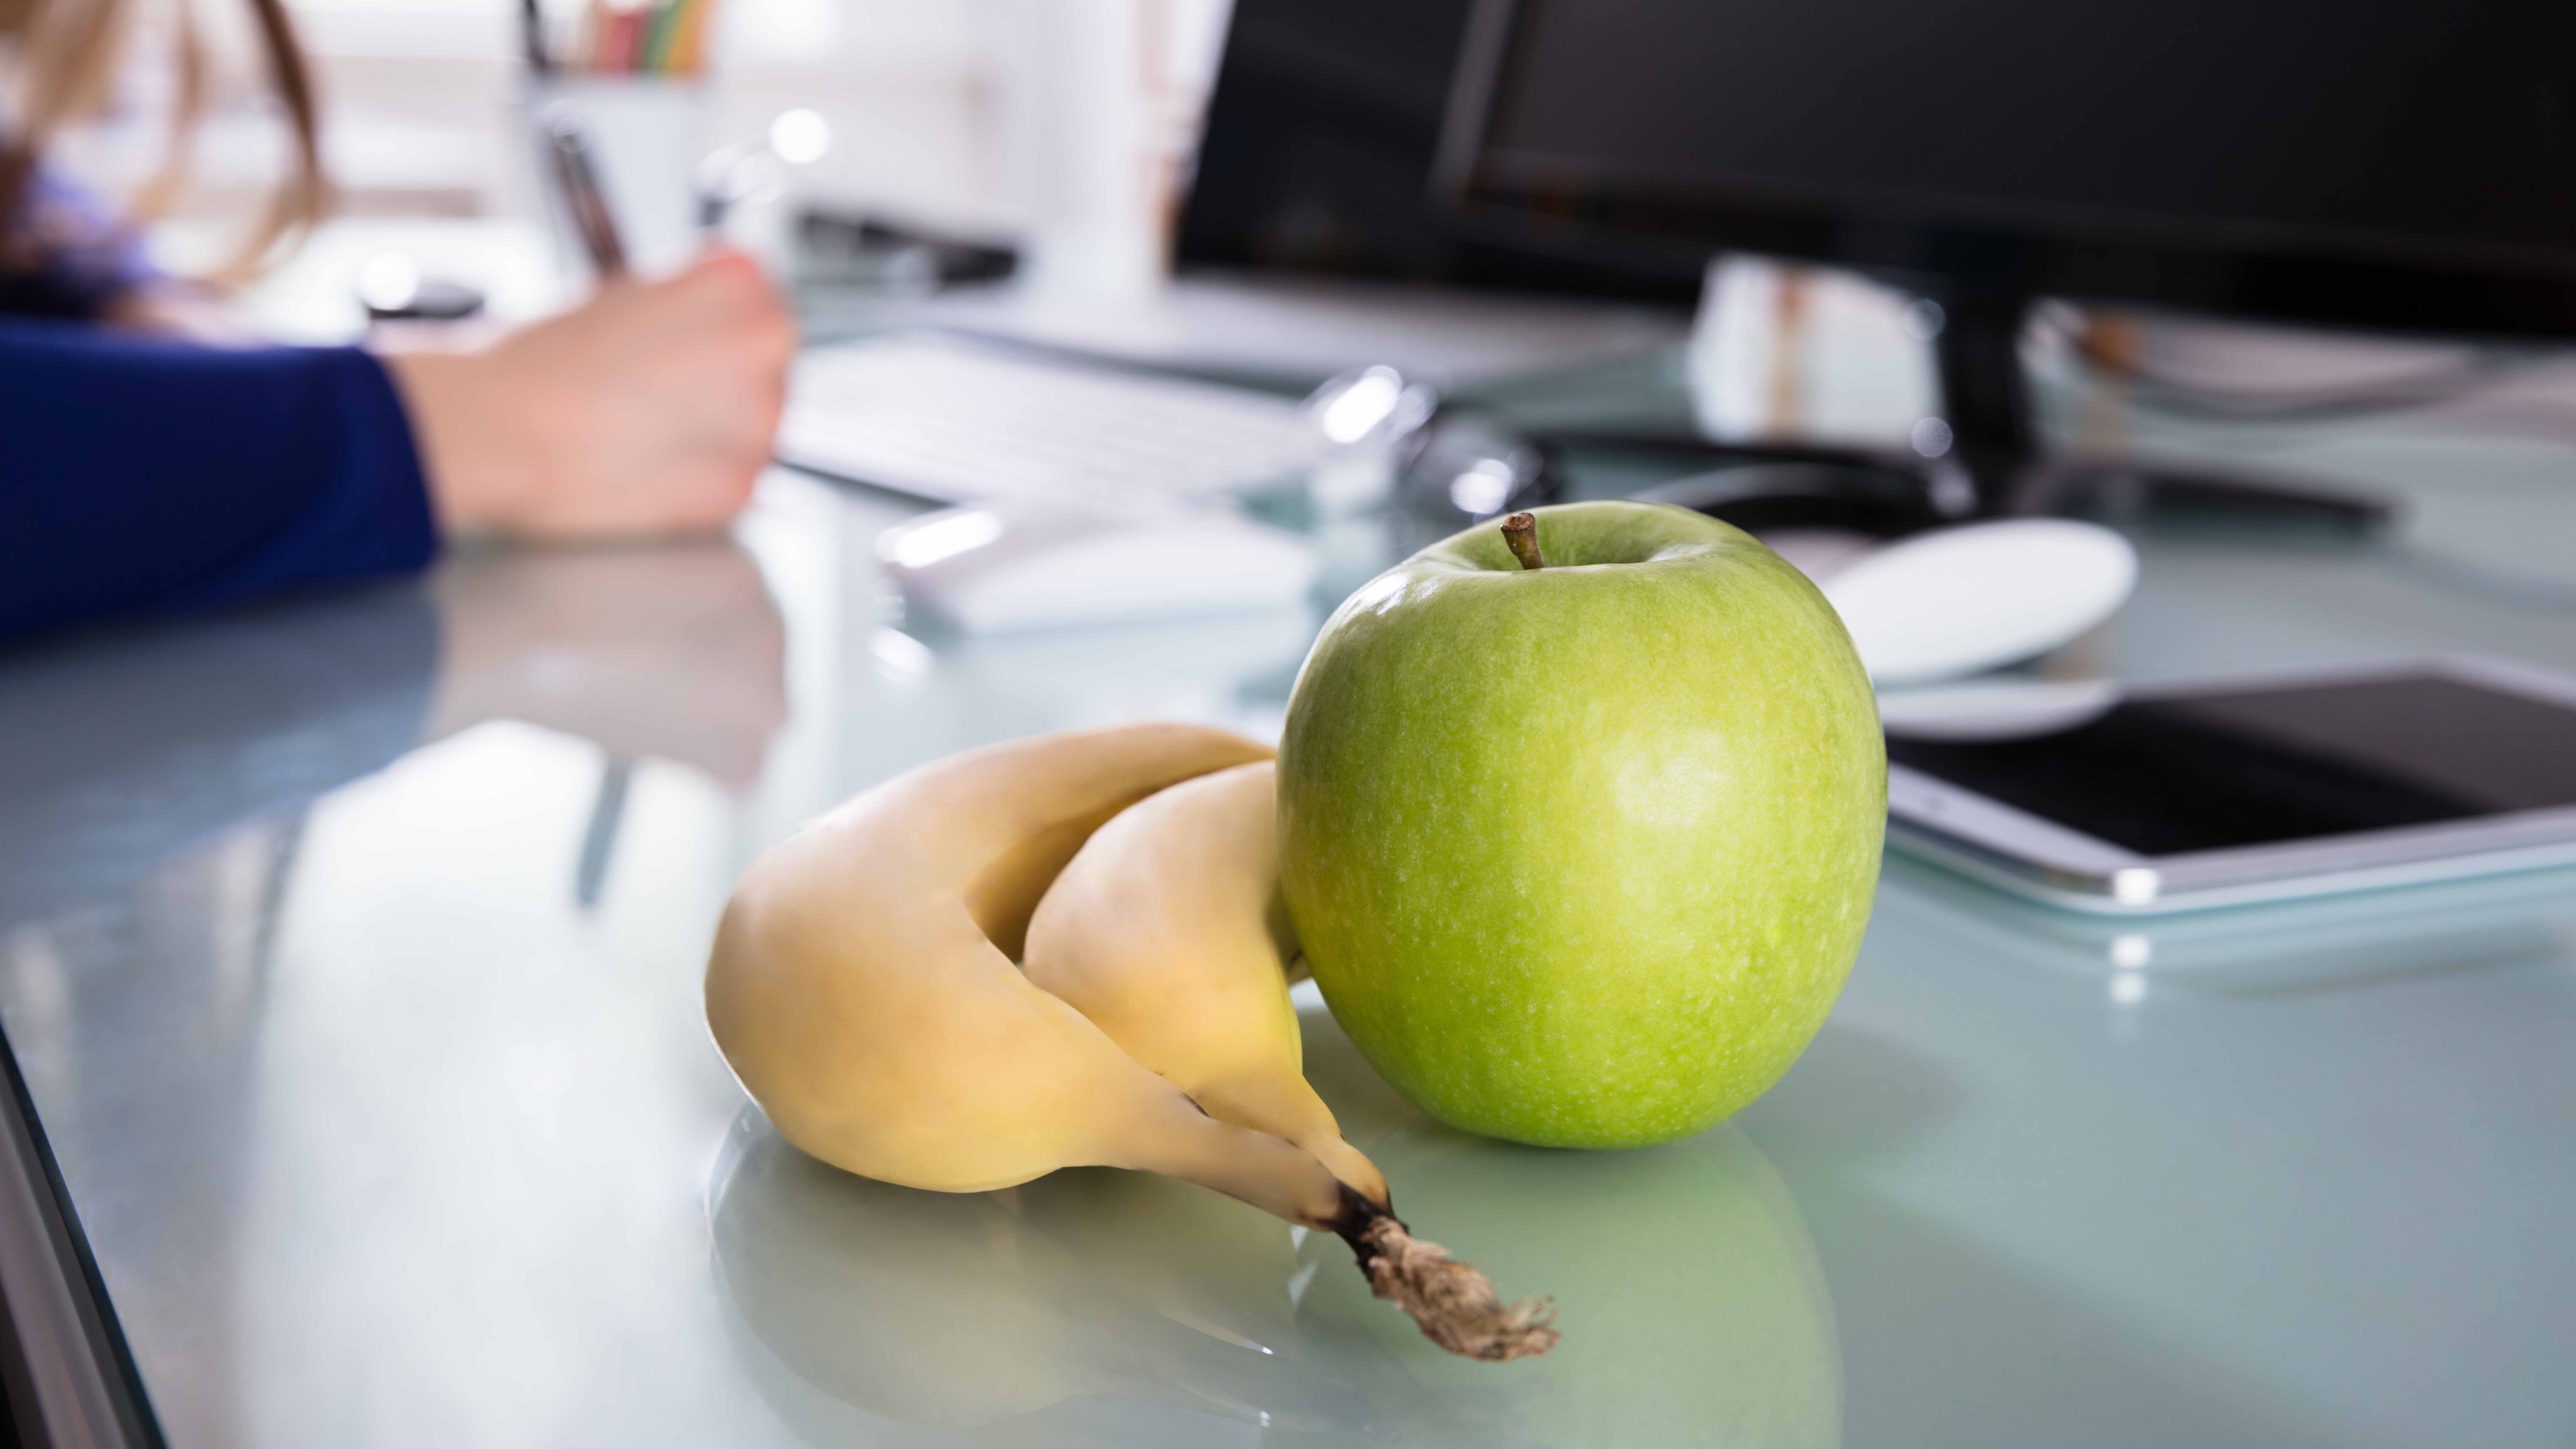 Banana and apple on a table